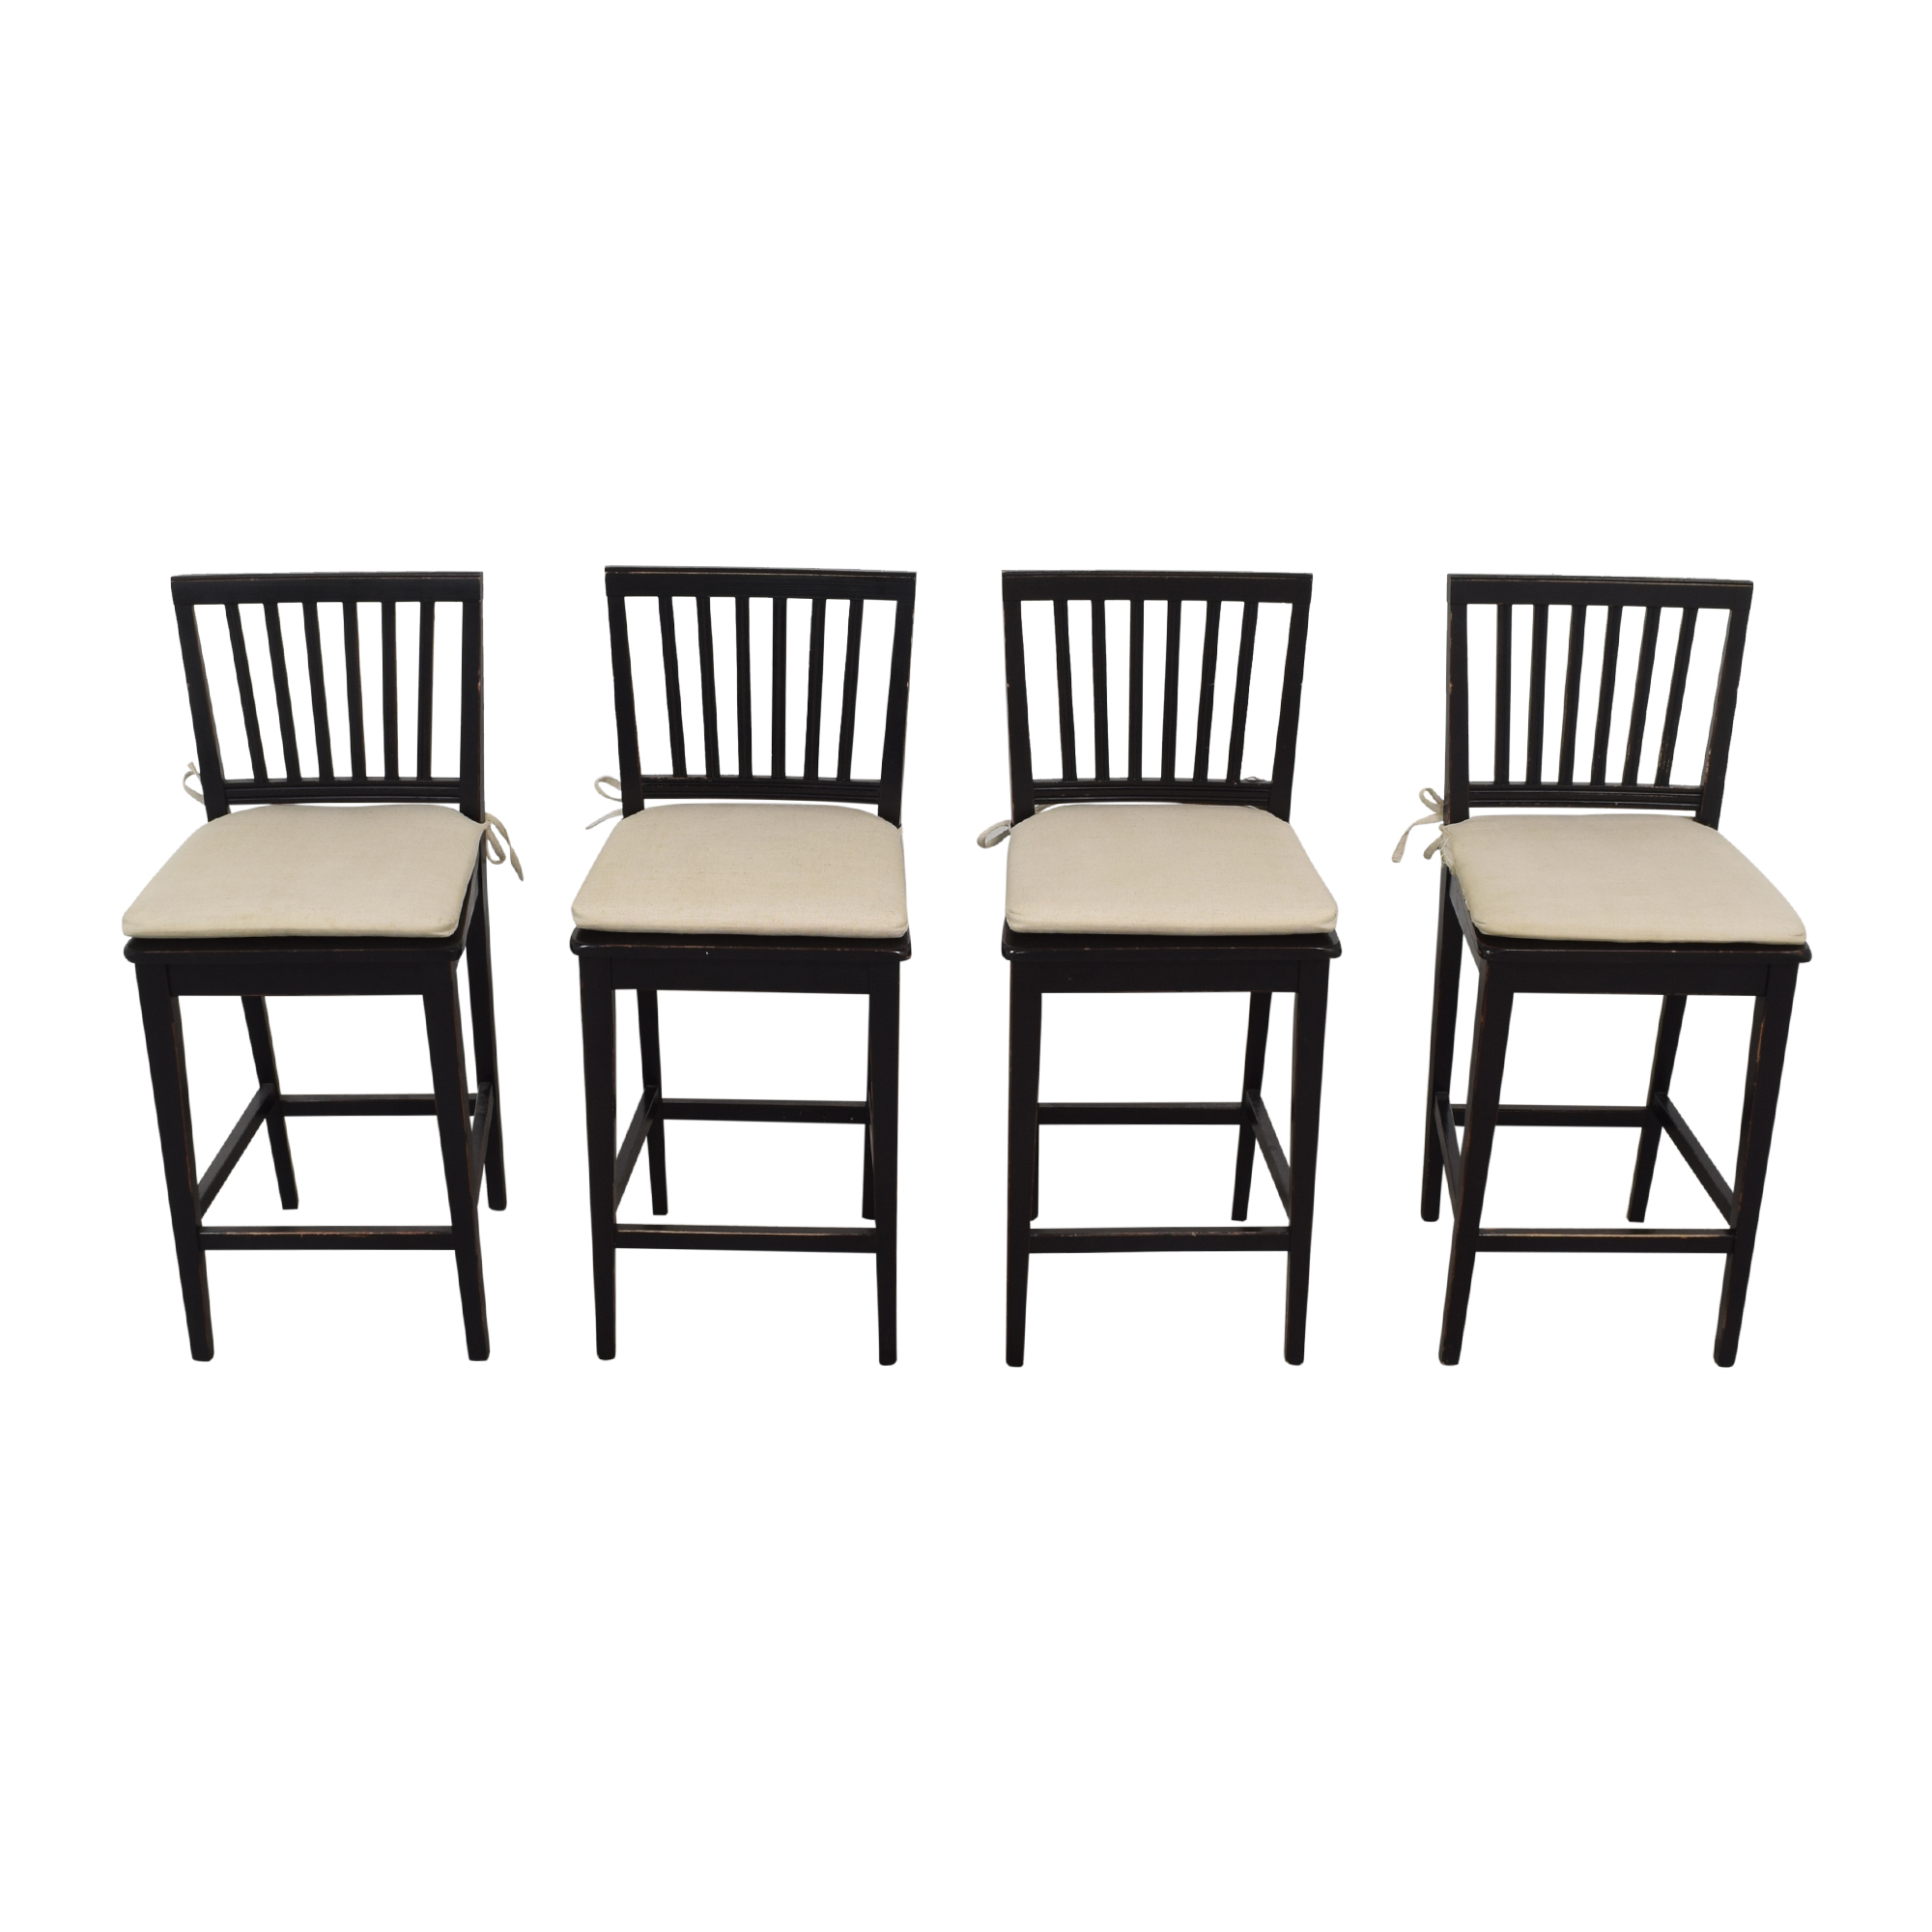 Crate & Barrel Buying & Design Counter Height Chairs Crate & Barrel